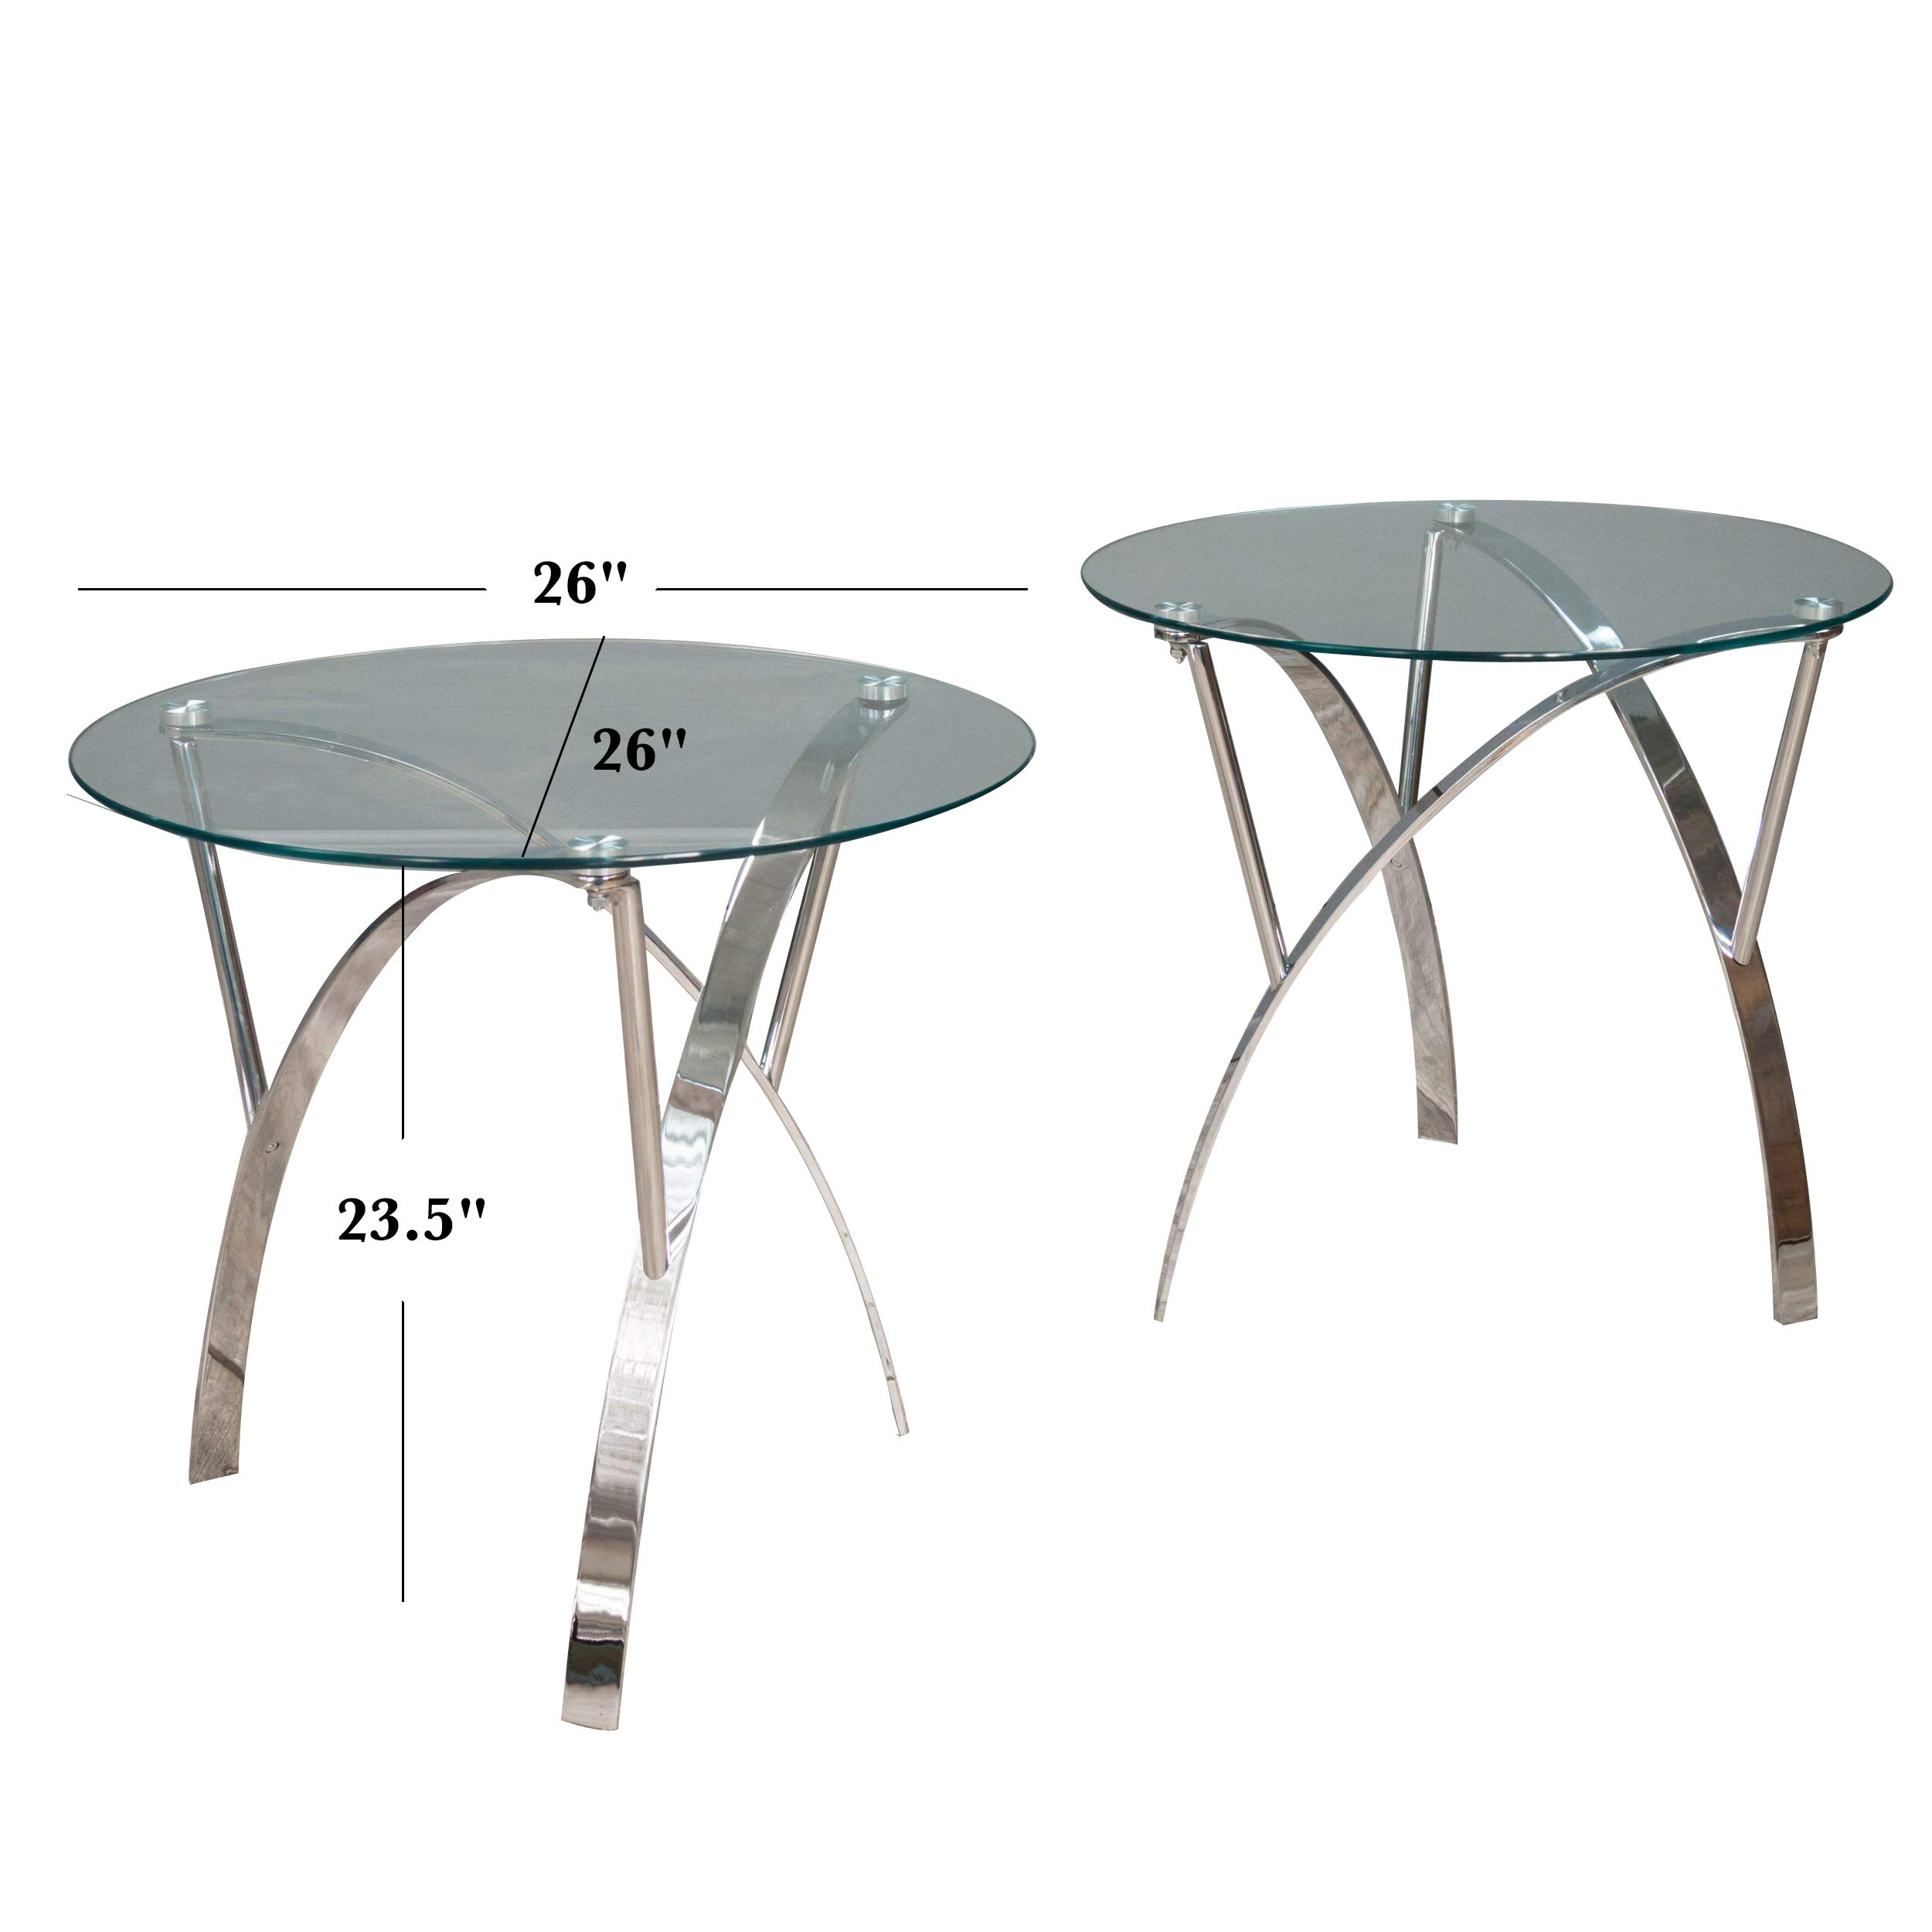 Great Deal Furniture 295401 Davina Tempered Glass Round End Tables w/Chrome Legs (Set of 2), Clear by Great Deal Furniture